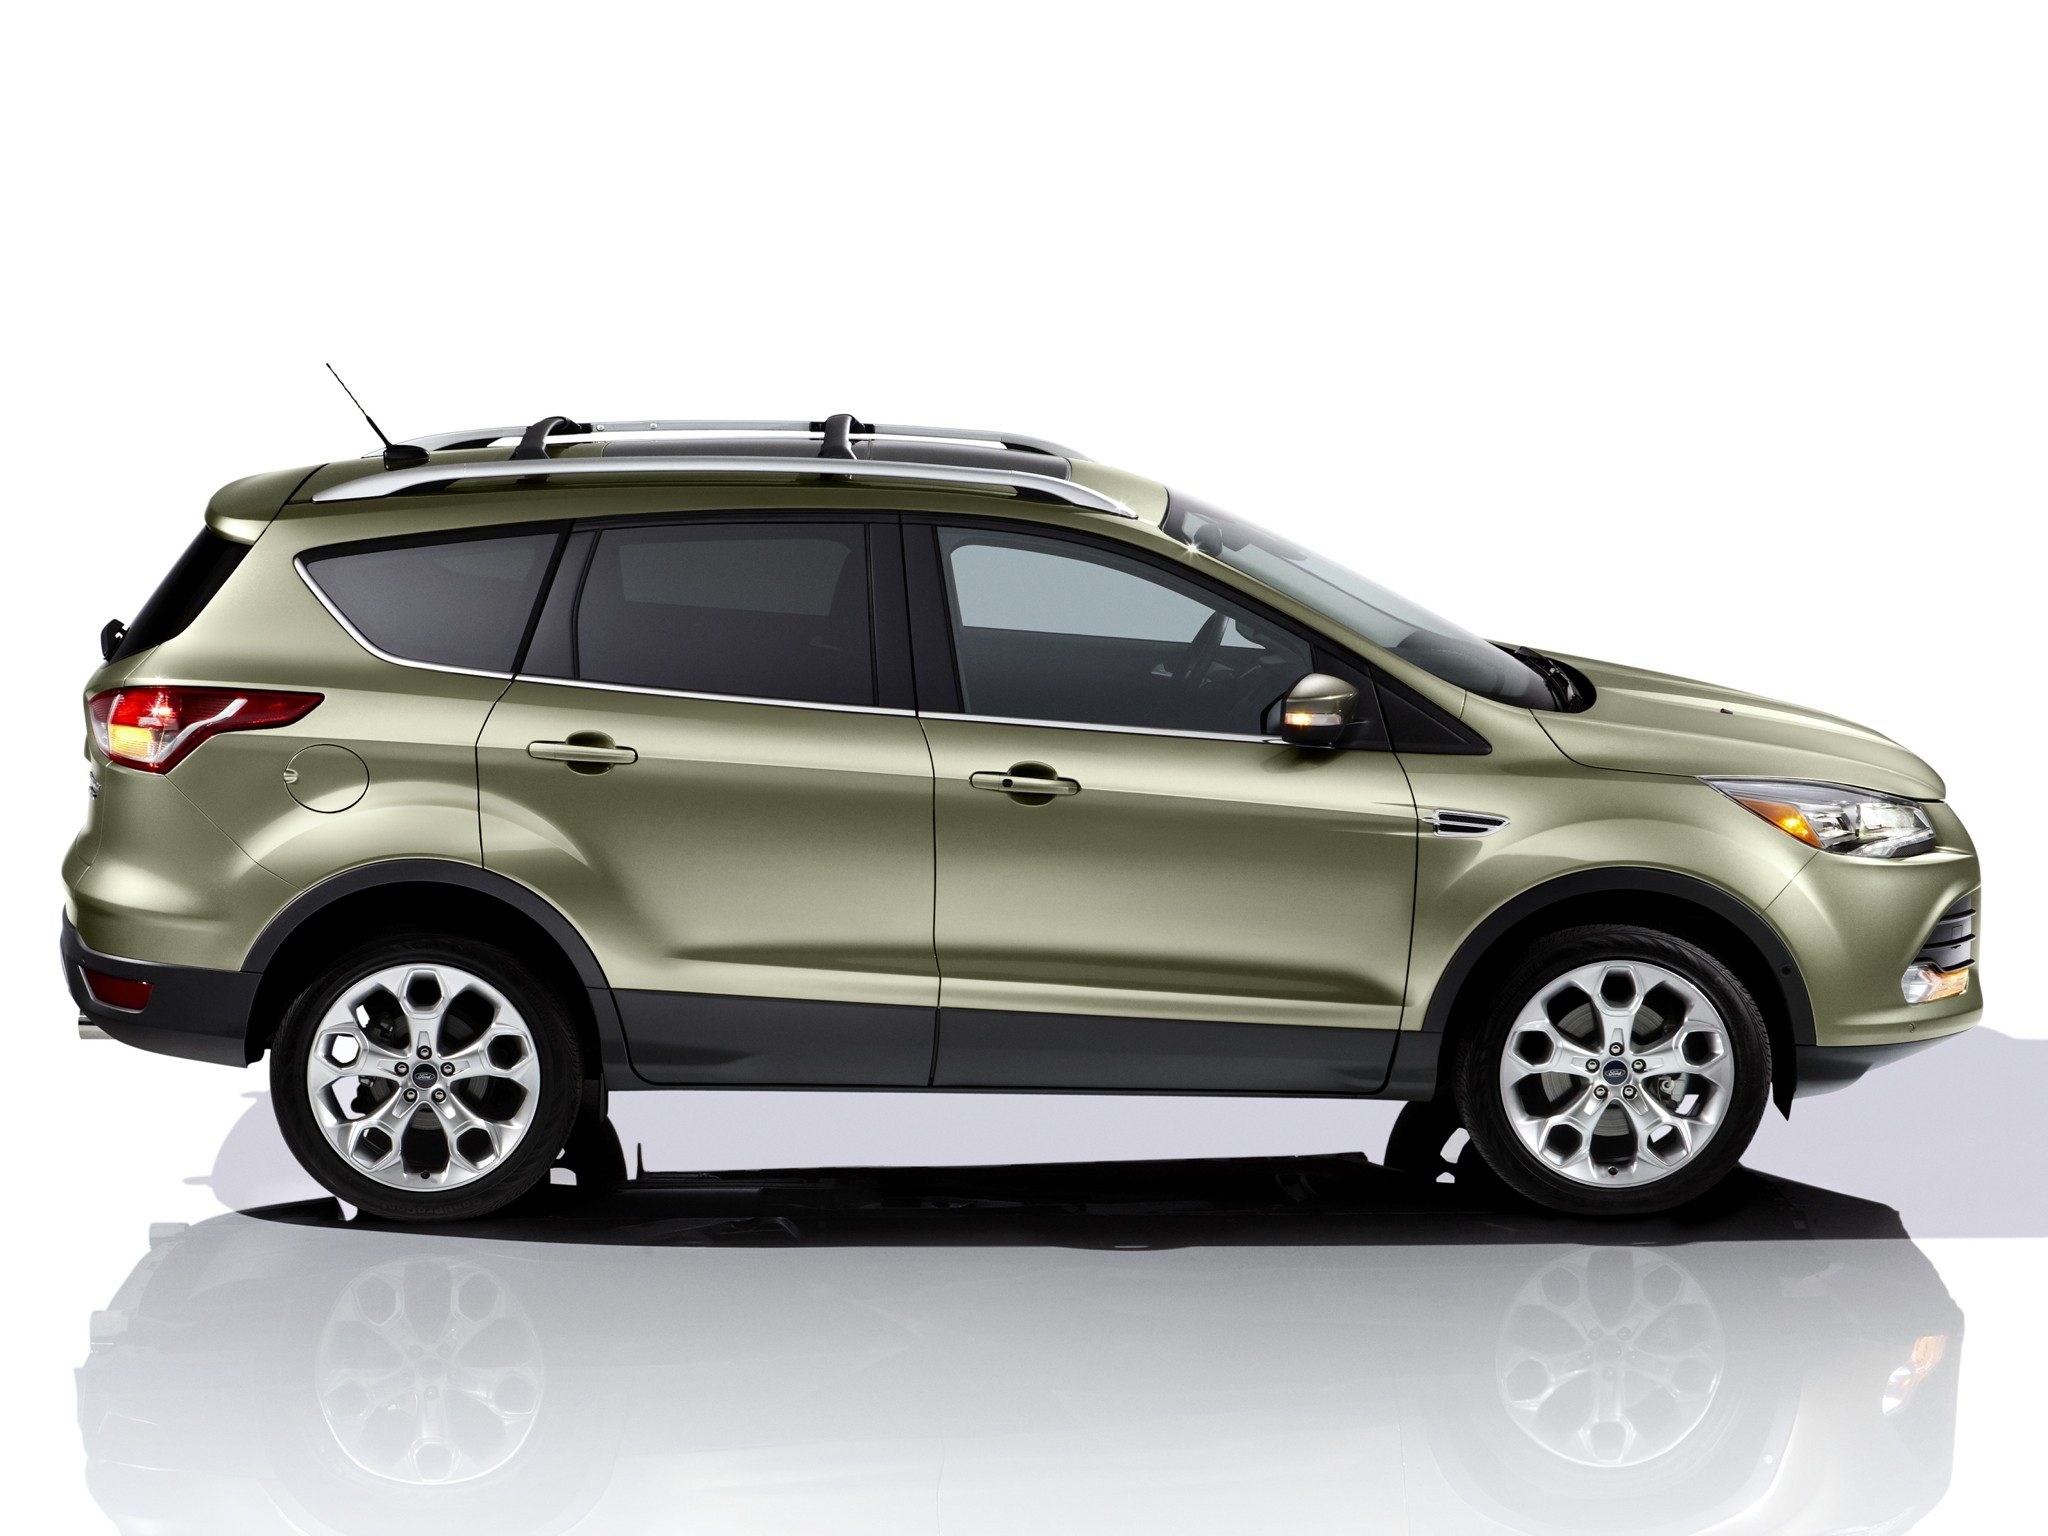 FORD Escape specs & photos - 2012, 2013, 2014, 2015, 2016 ...